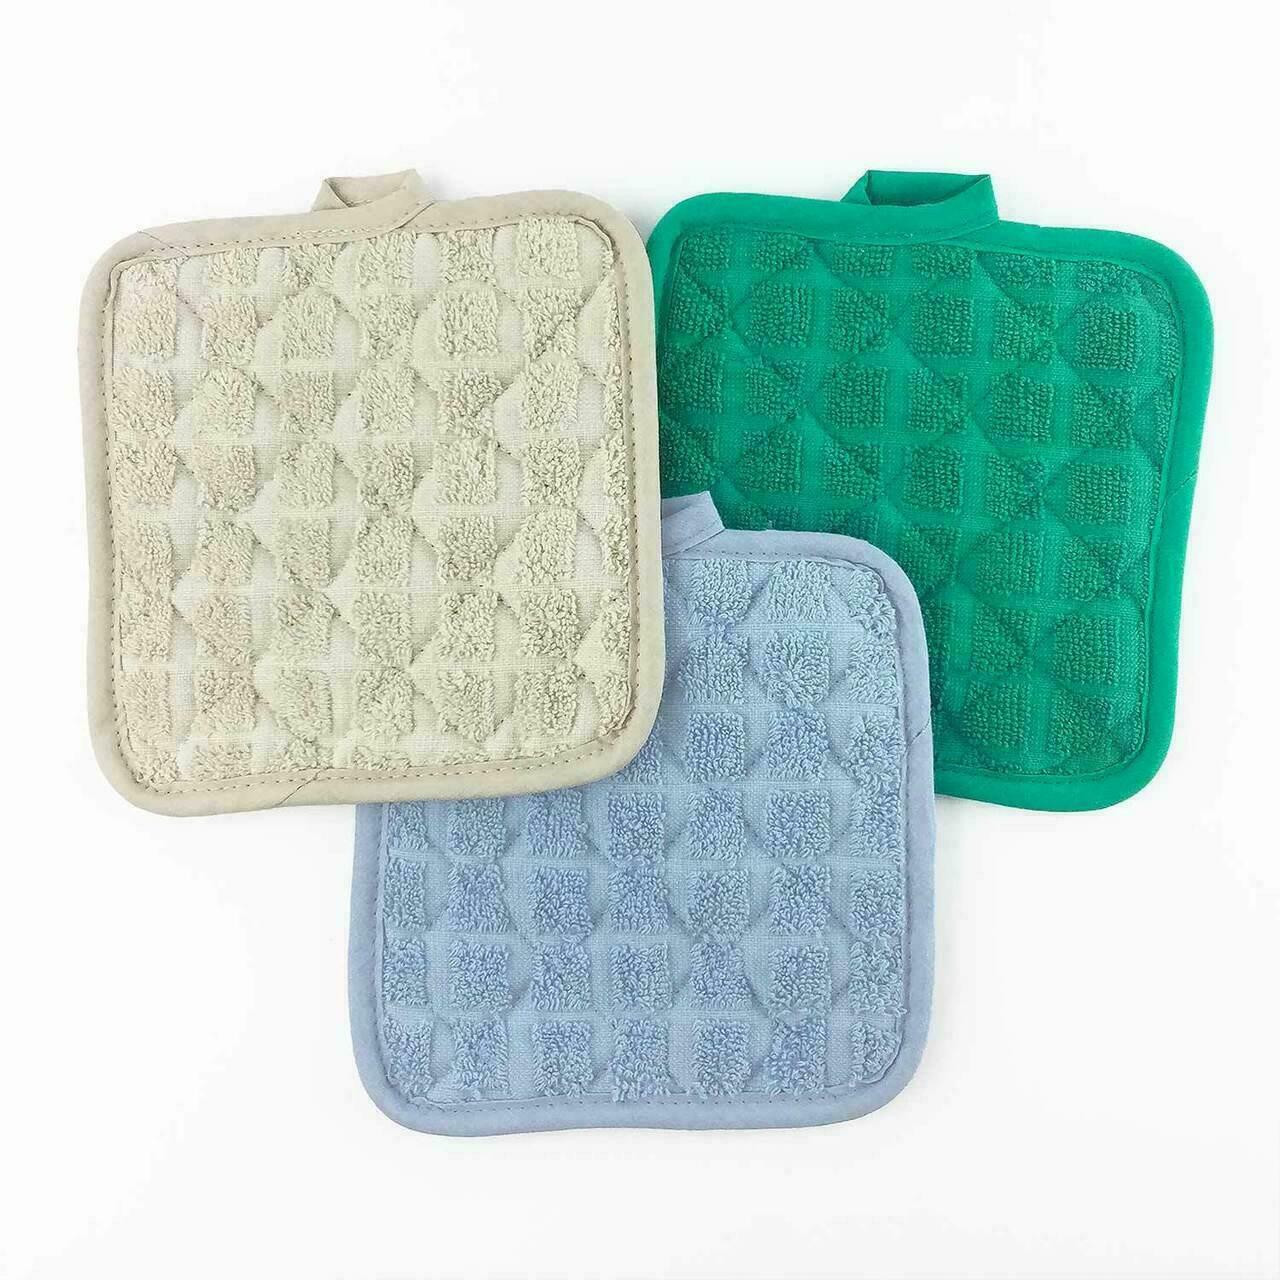 Martex Wovens by WestPoint Hospitality MARTEX or POT HOLDER or 7x7 or 100percent RING SPUN COTTON LOOPS or 24 DZ PER CASE